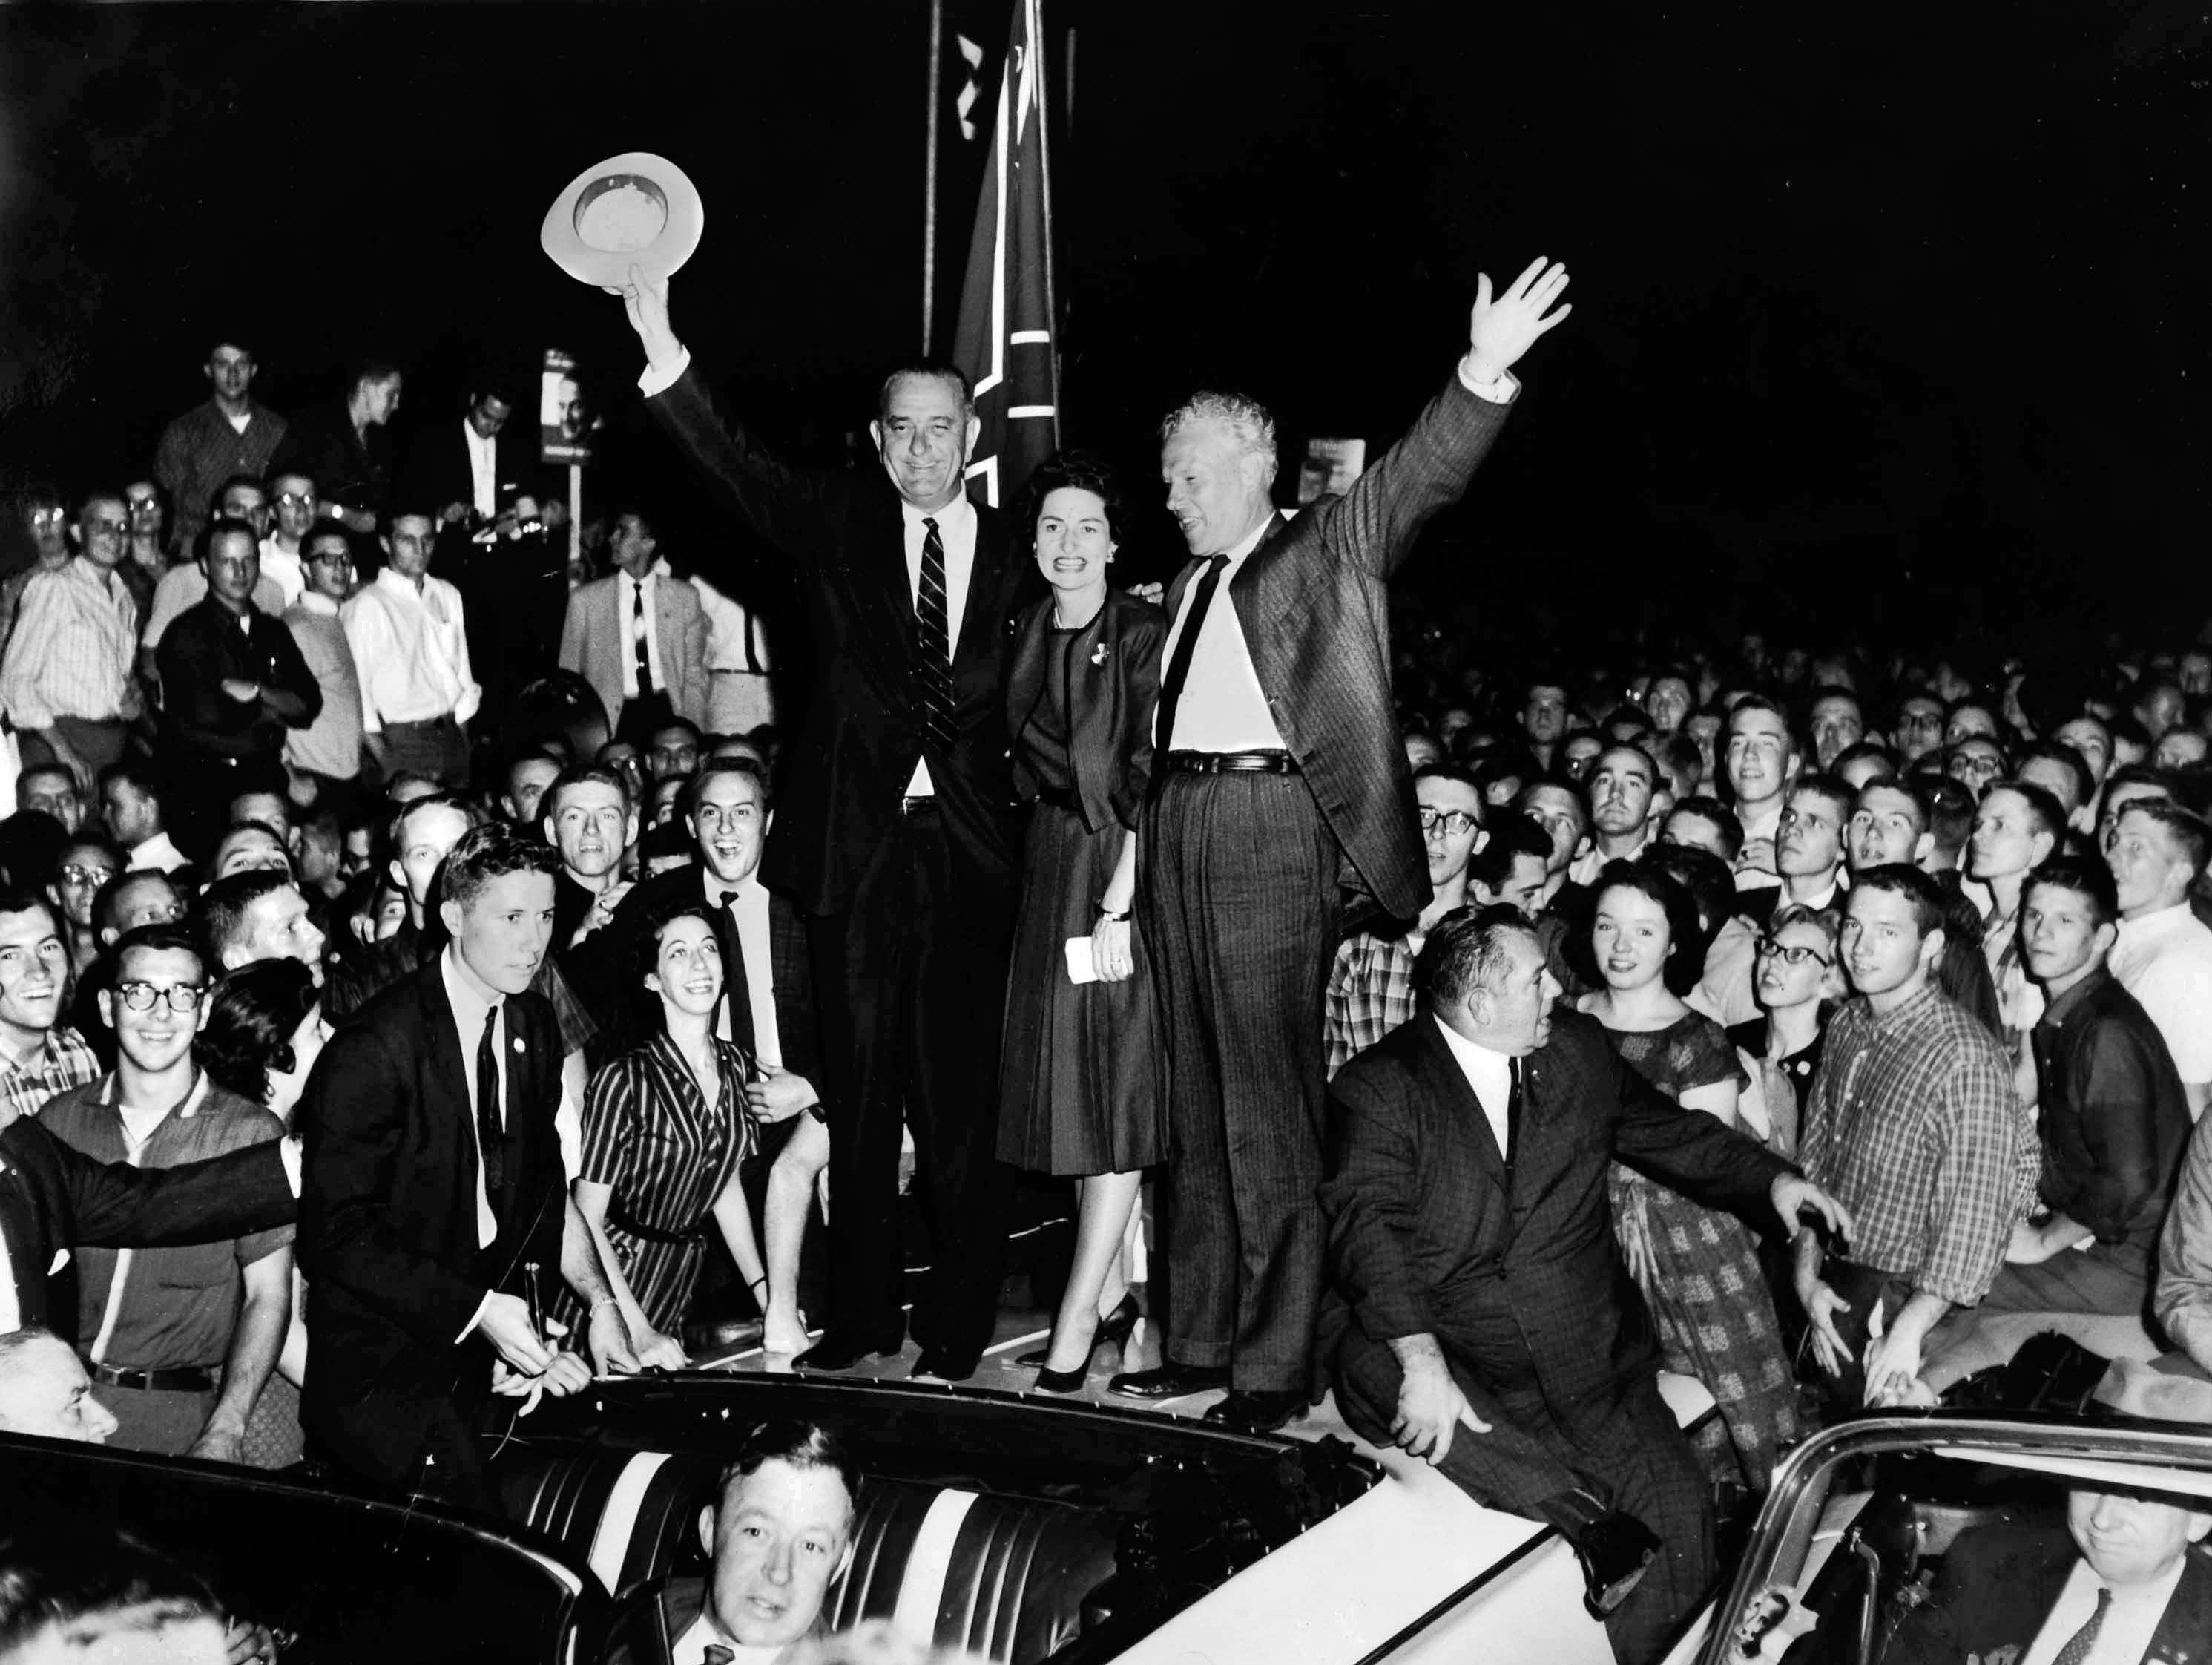 In a Sept. 30, 1960, photograph, Democratic Vice Presidential candidate Lyndon B. Johnson visits Knoxville with his wife, Lady Bird, and U.S. Sen. Albert Gore Sr.